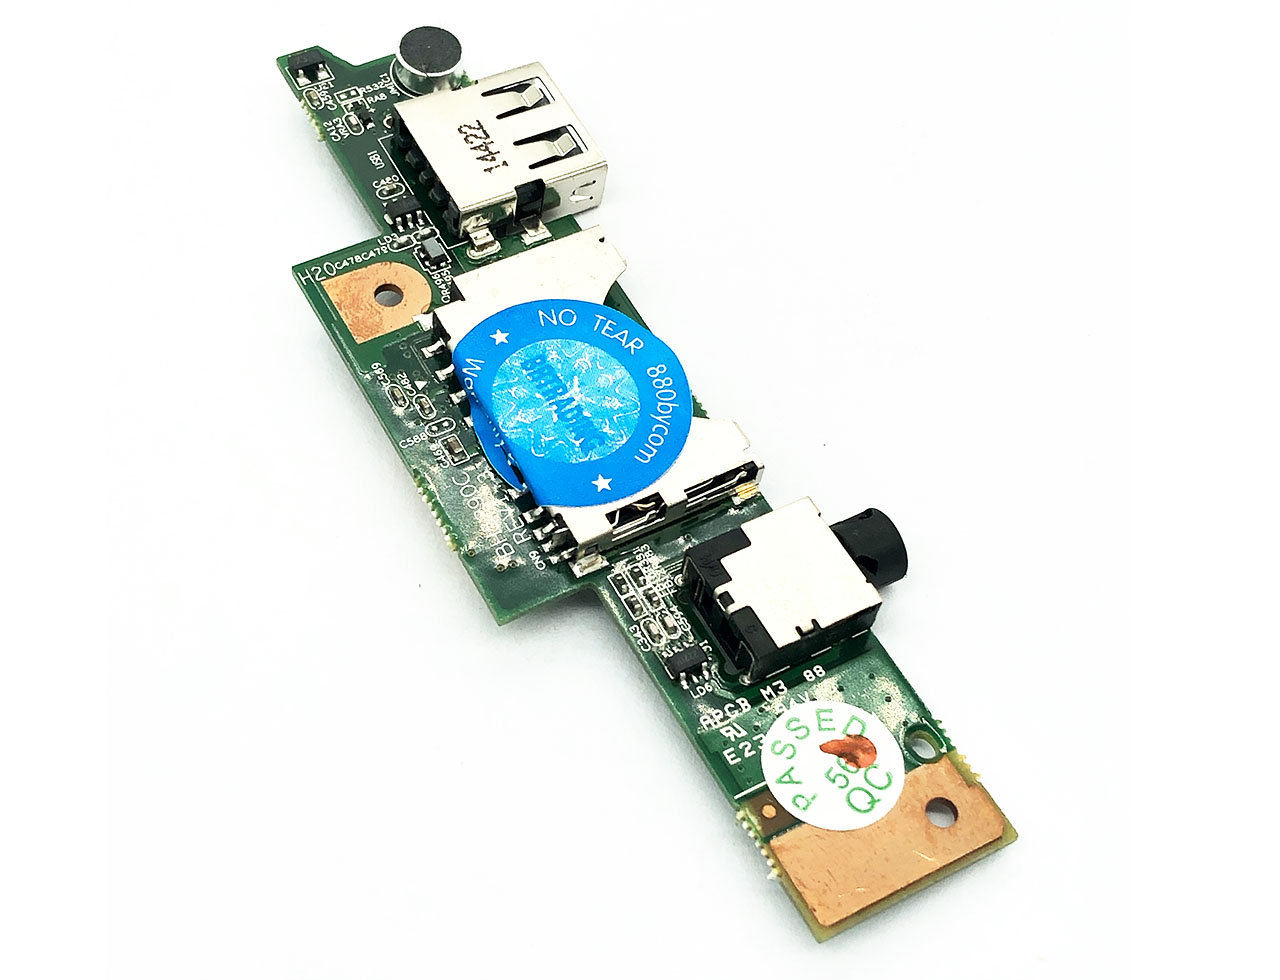 联想Lenovo IdeaPad S210 麦克风 耳机插孔 USB SD读卡器小板Touch Audio Jack USB Port Board BH5290C REV1.3